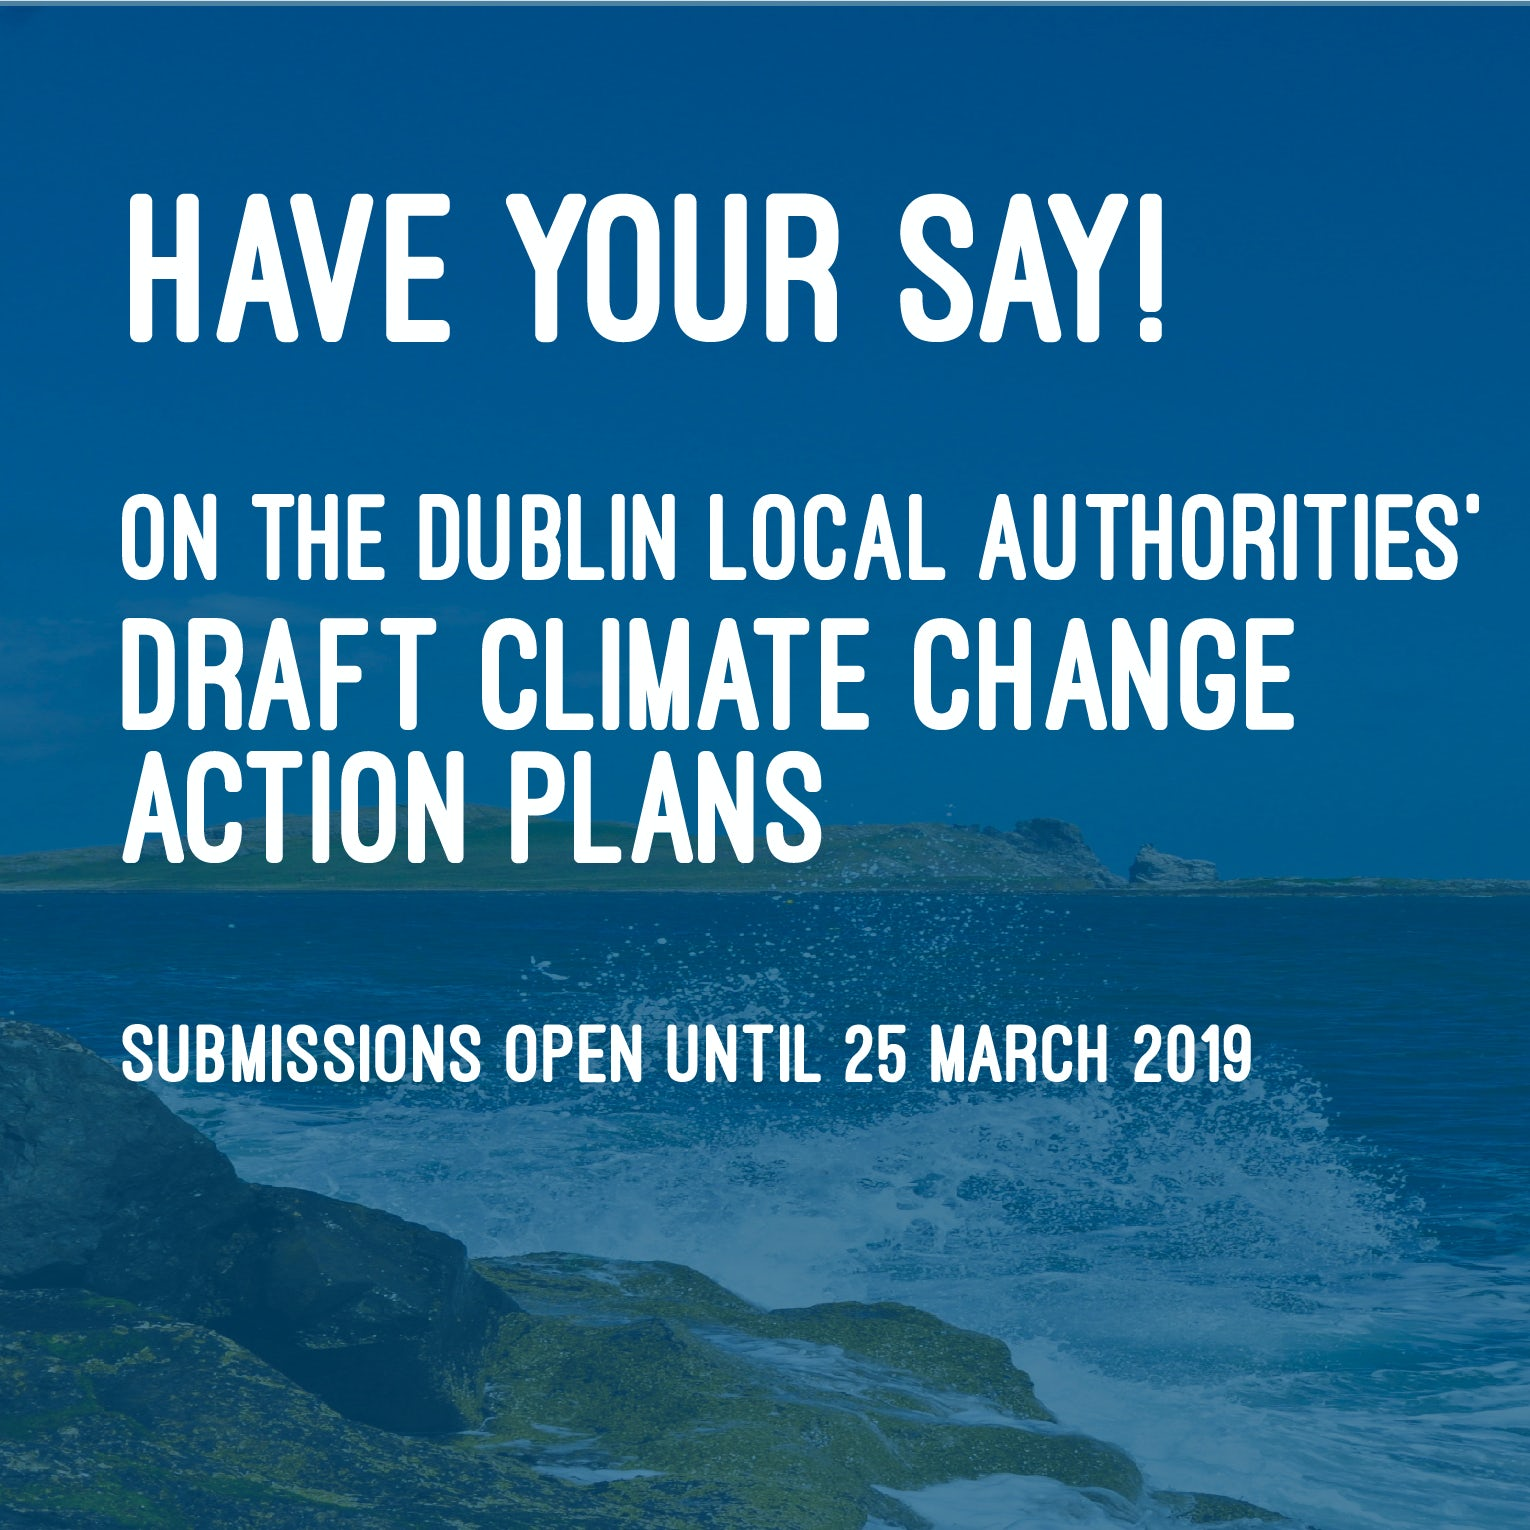 Less than a week left to have your say!